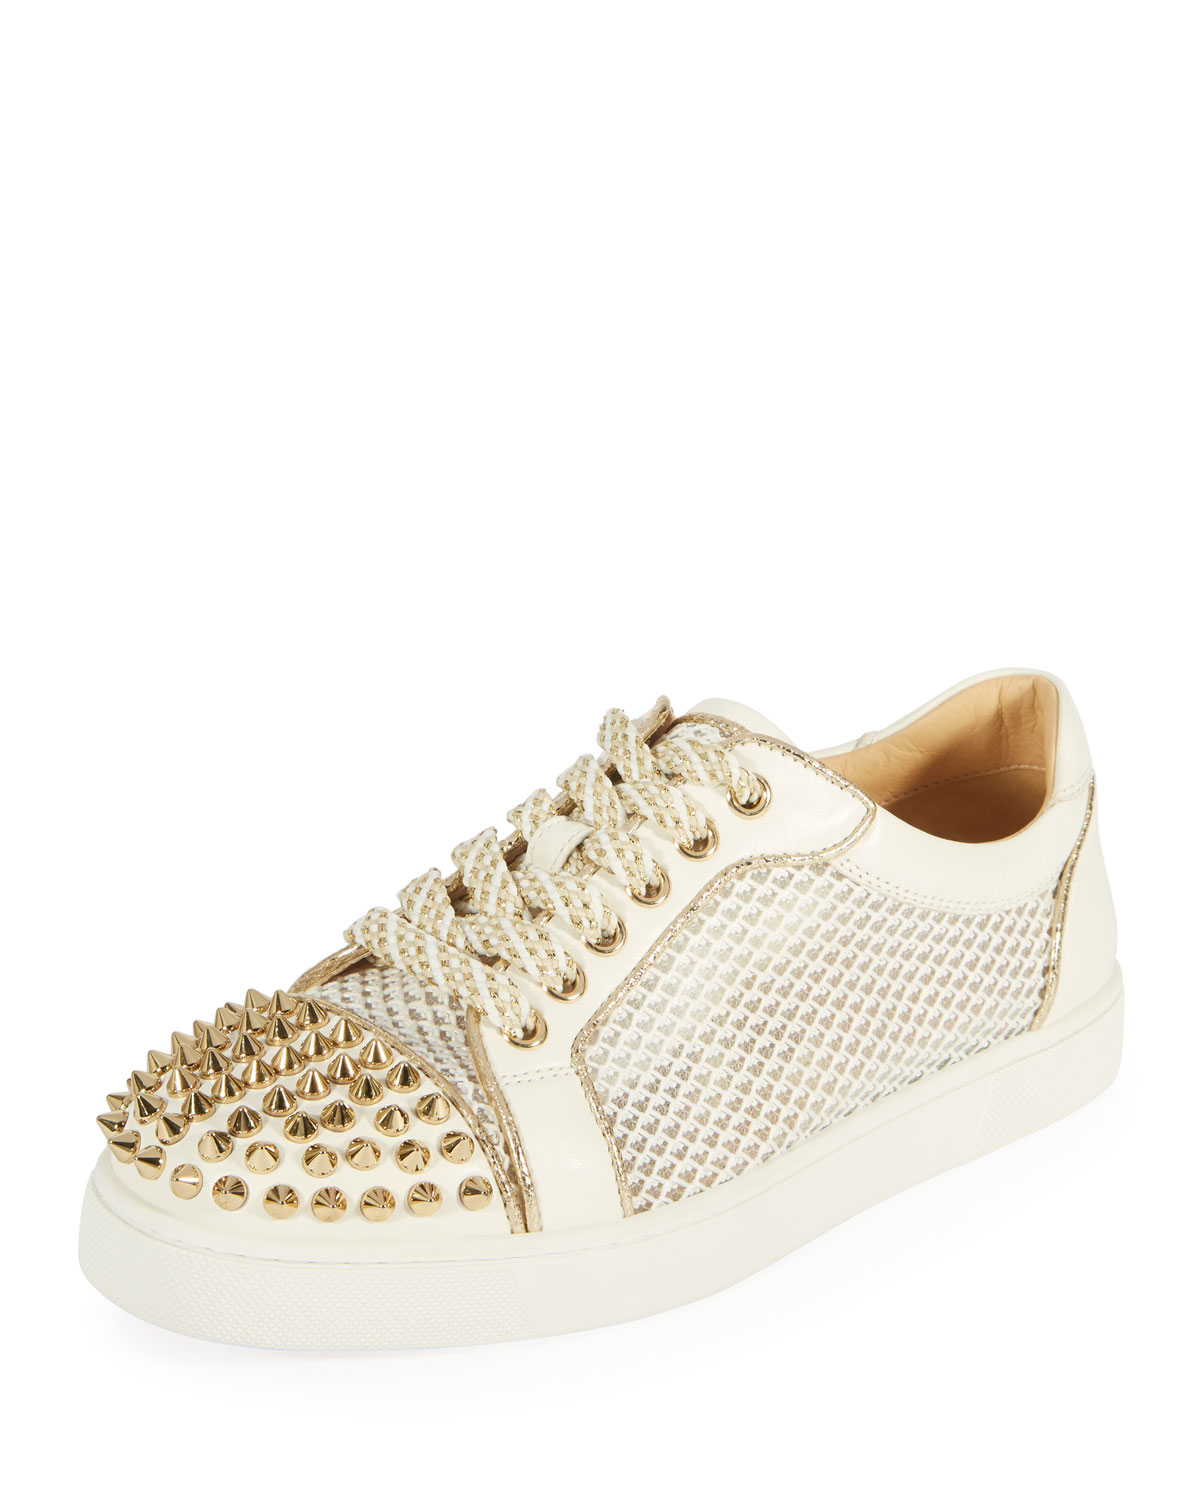 a0573490b890 Christian Louboutin AC Viera Spikes Red Sole Low-Top Sneakers ...